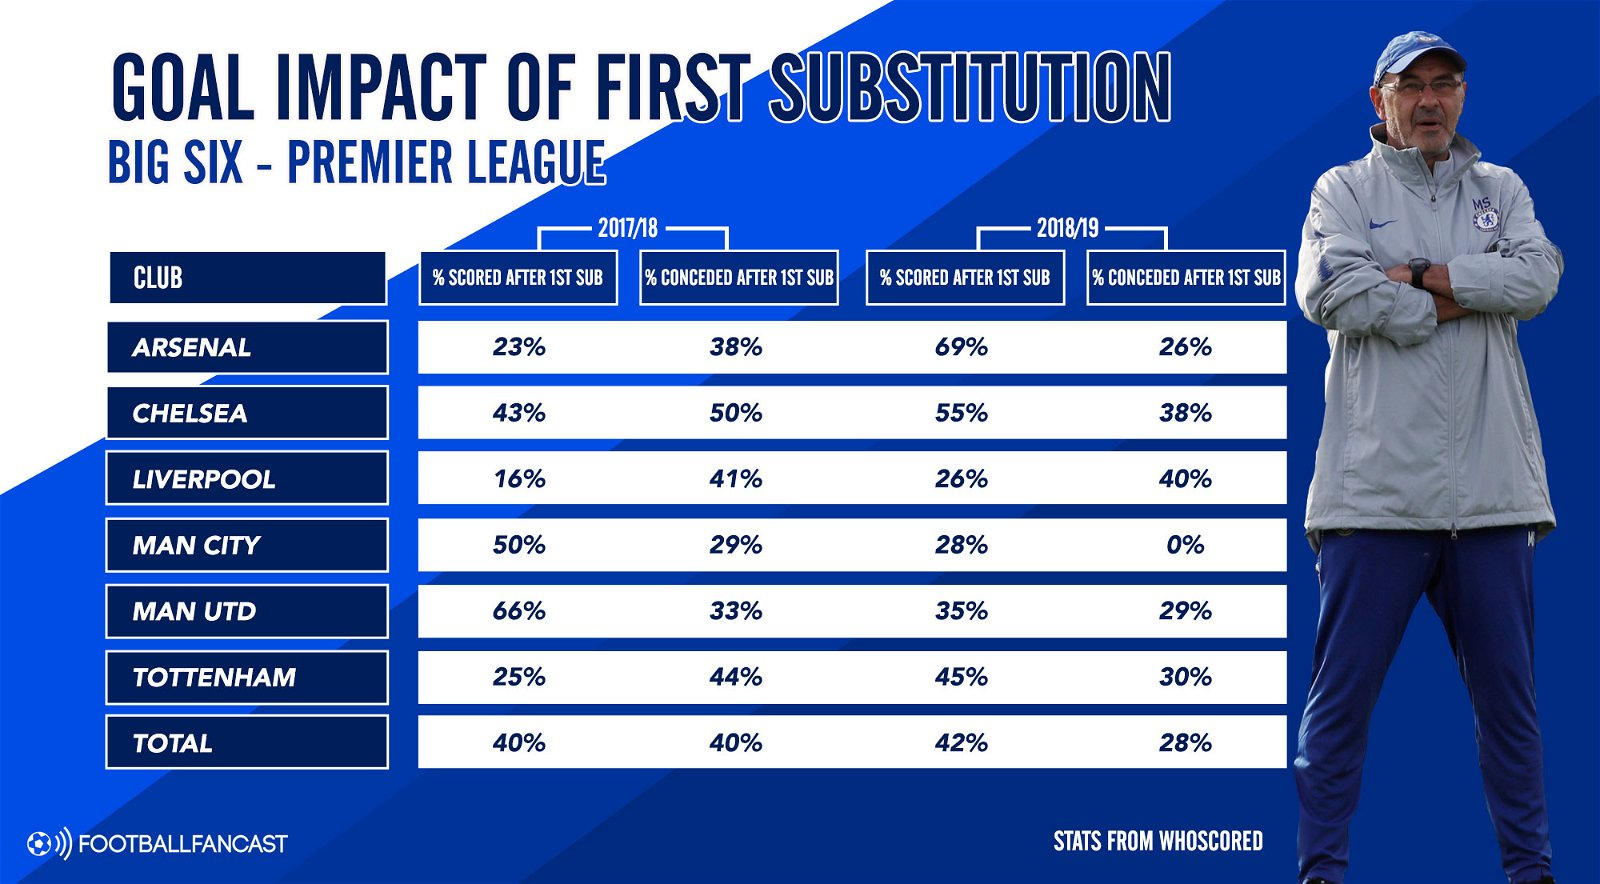 Goal Impact of First Substitution - Big Six